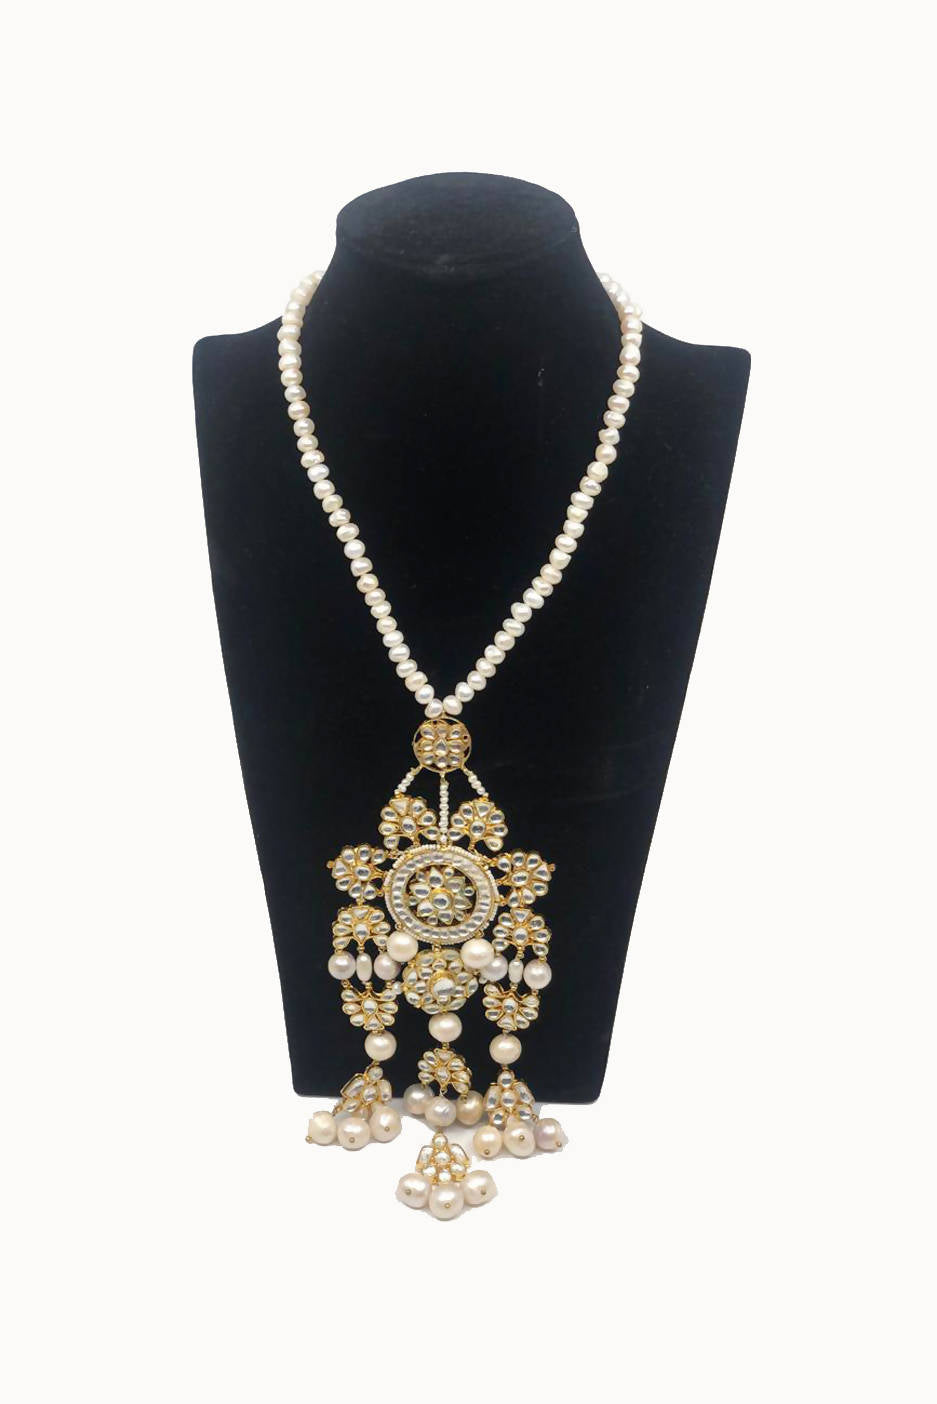 Golden Indian Design Necklace with Pearls